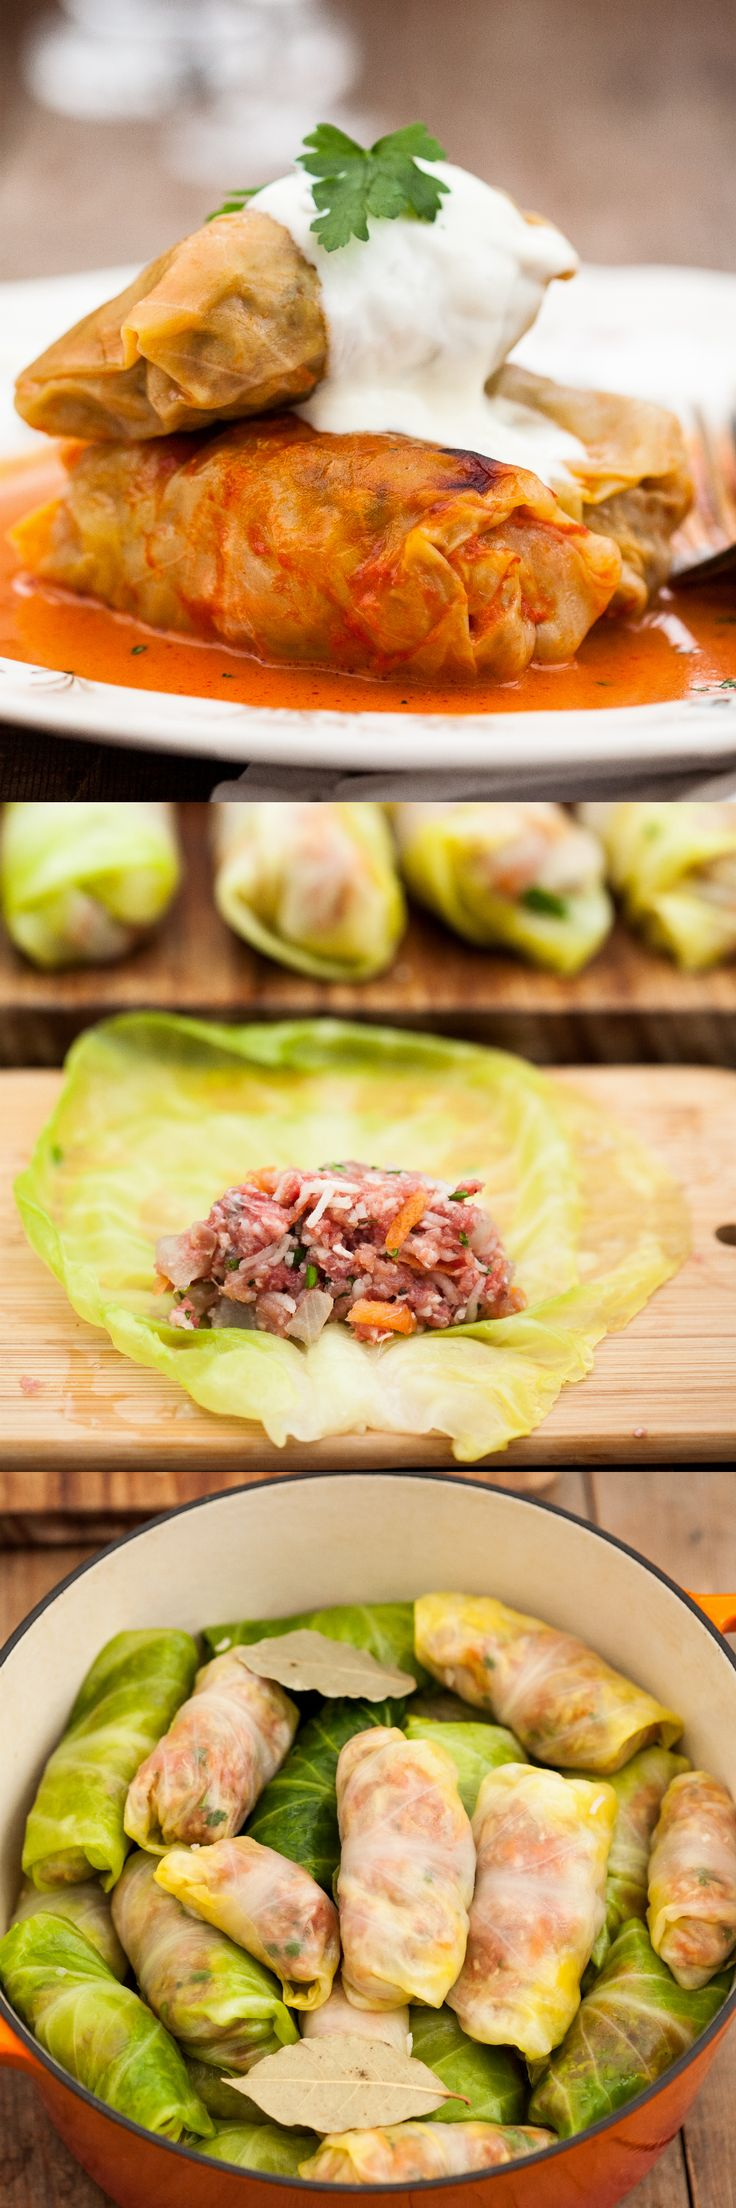 Russian Cabbage Rolls stuffed with extra lean beef, rice and veggies and baked in a creamy tomato sauce. Comfort food at its best.